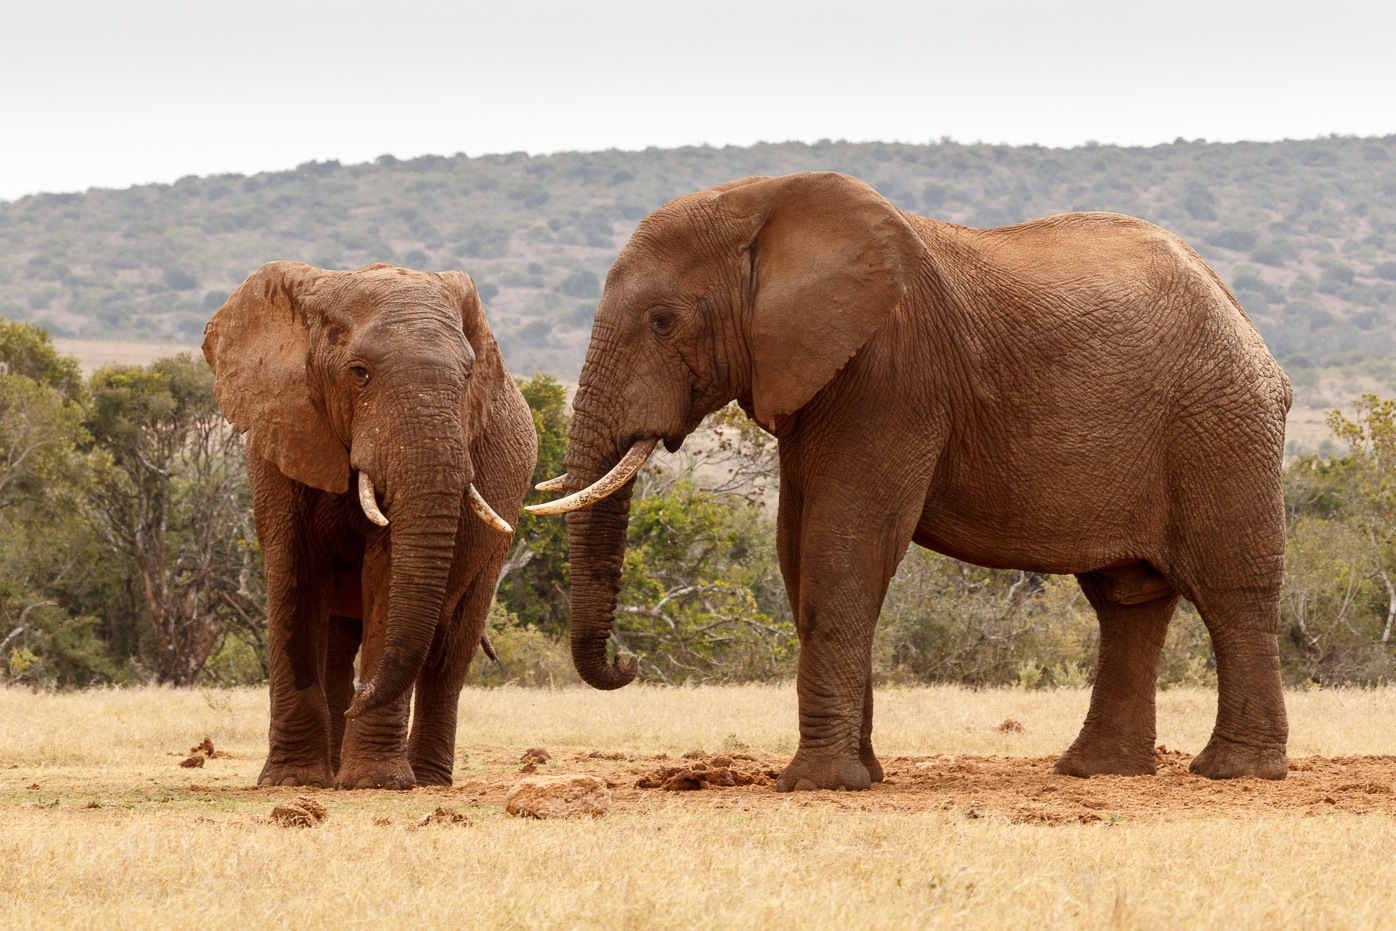 African elephants staring at each other by Charissa de Scande Lotter